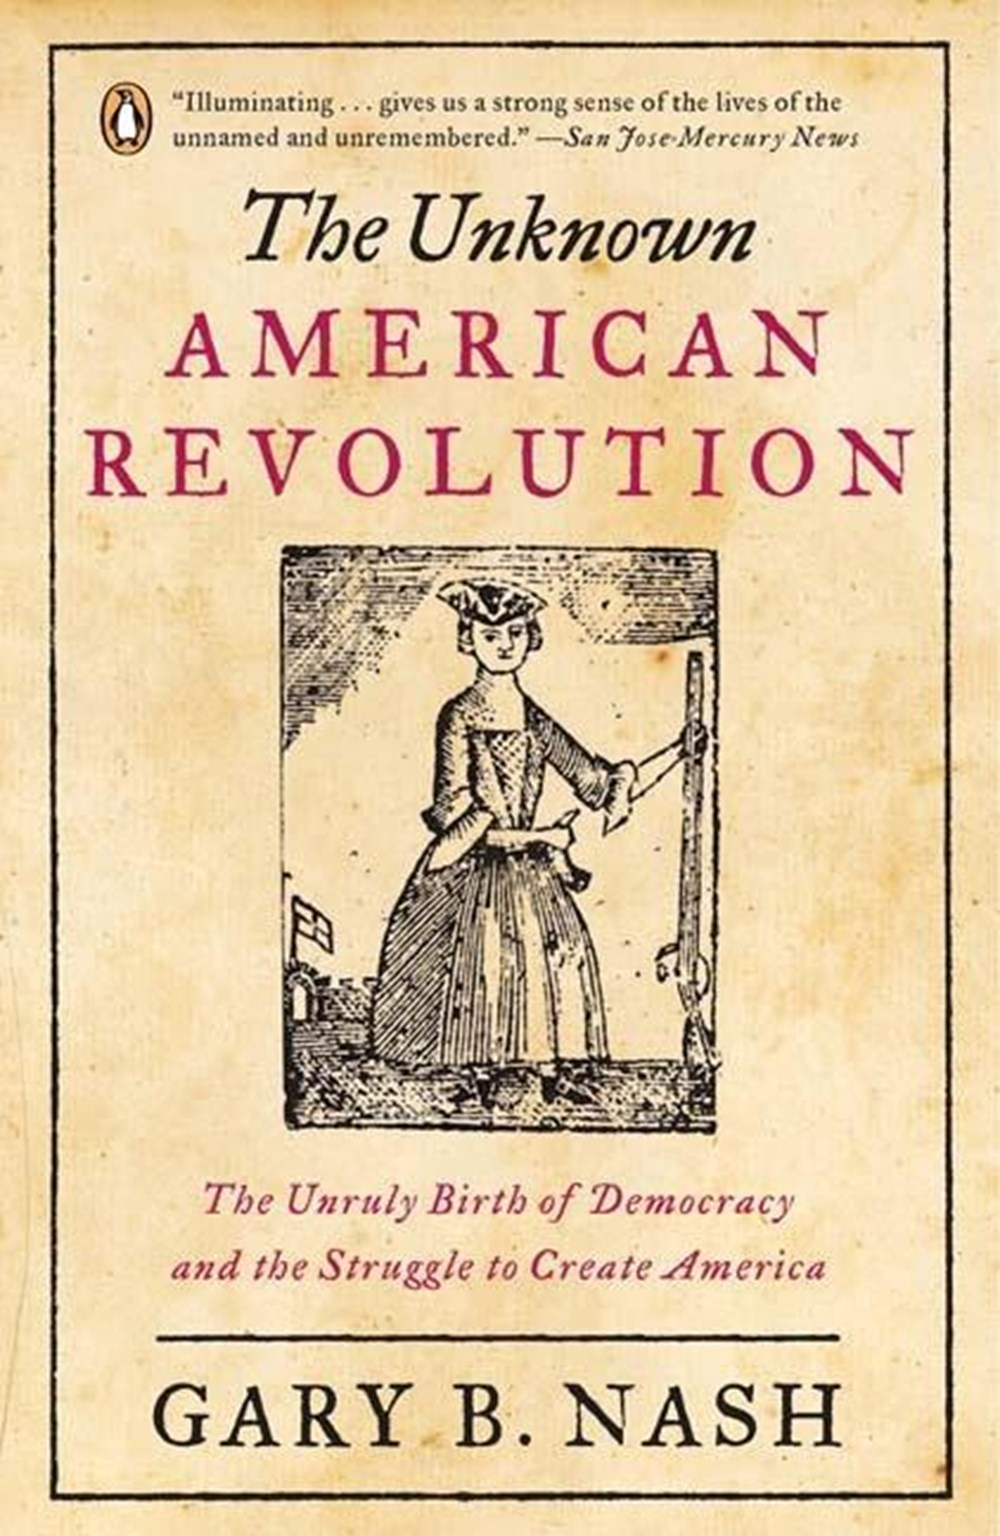 Unknown American Revolution The Unruly Birth of Democracy and the Struggle to Create America